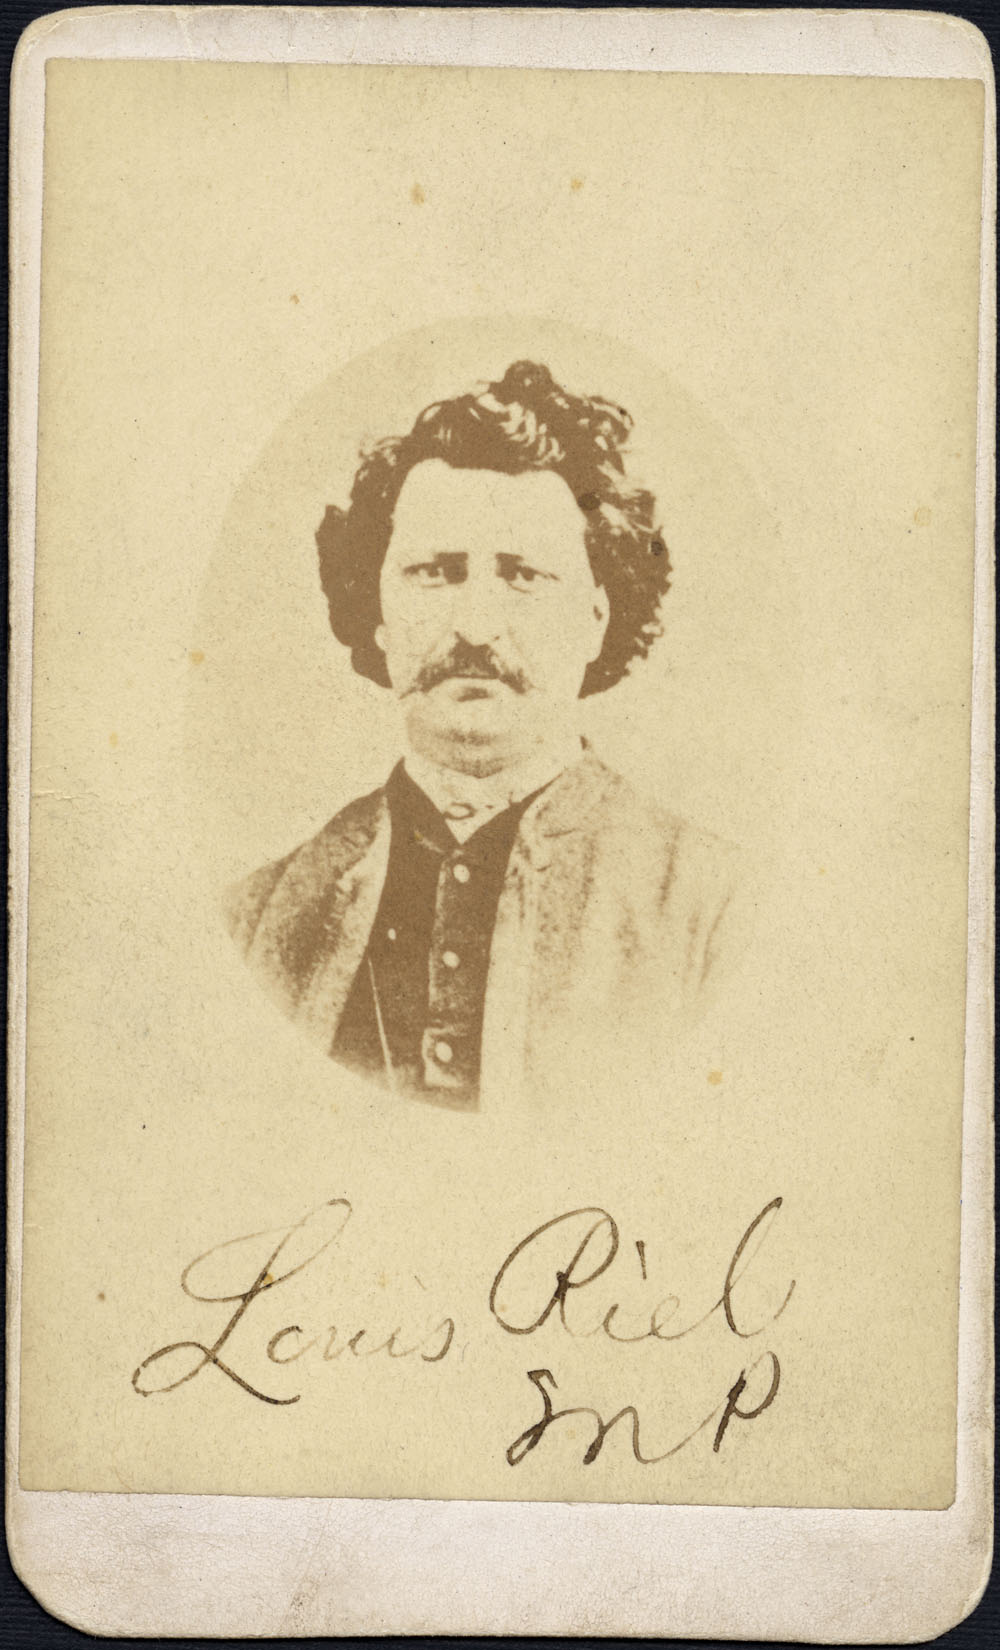 Carte De Visite Portrait Of Louis Riel